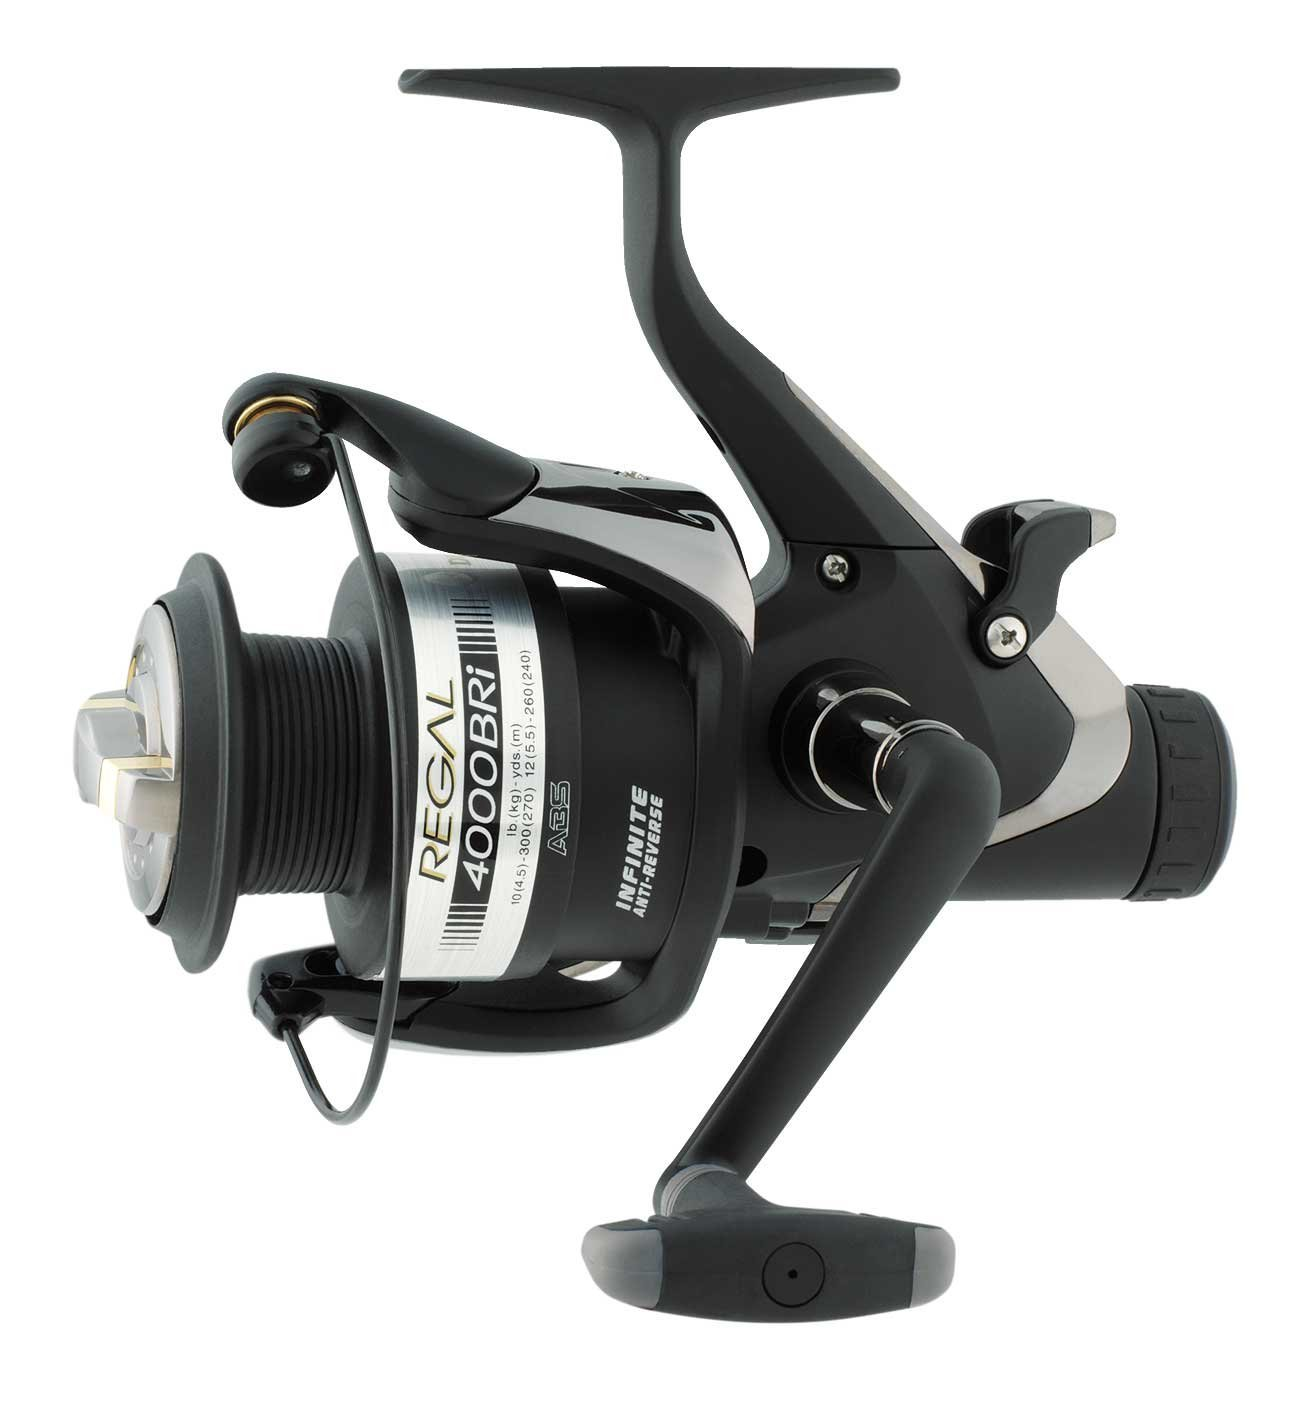 Daiwa Regal Bite N' Run Saltwater Spinning Reel 4000